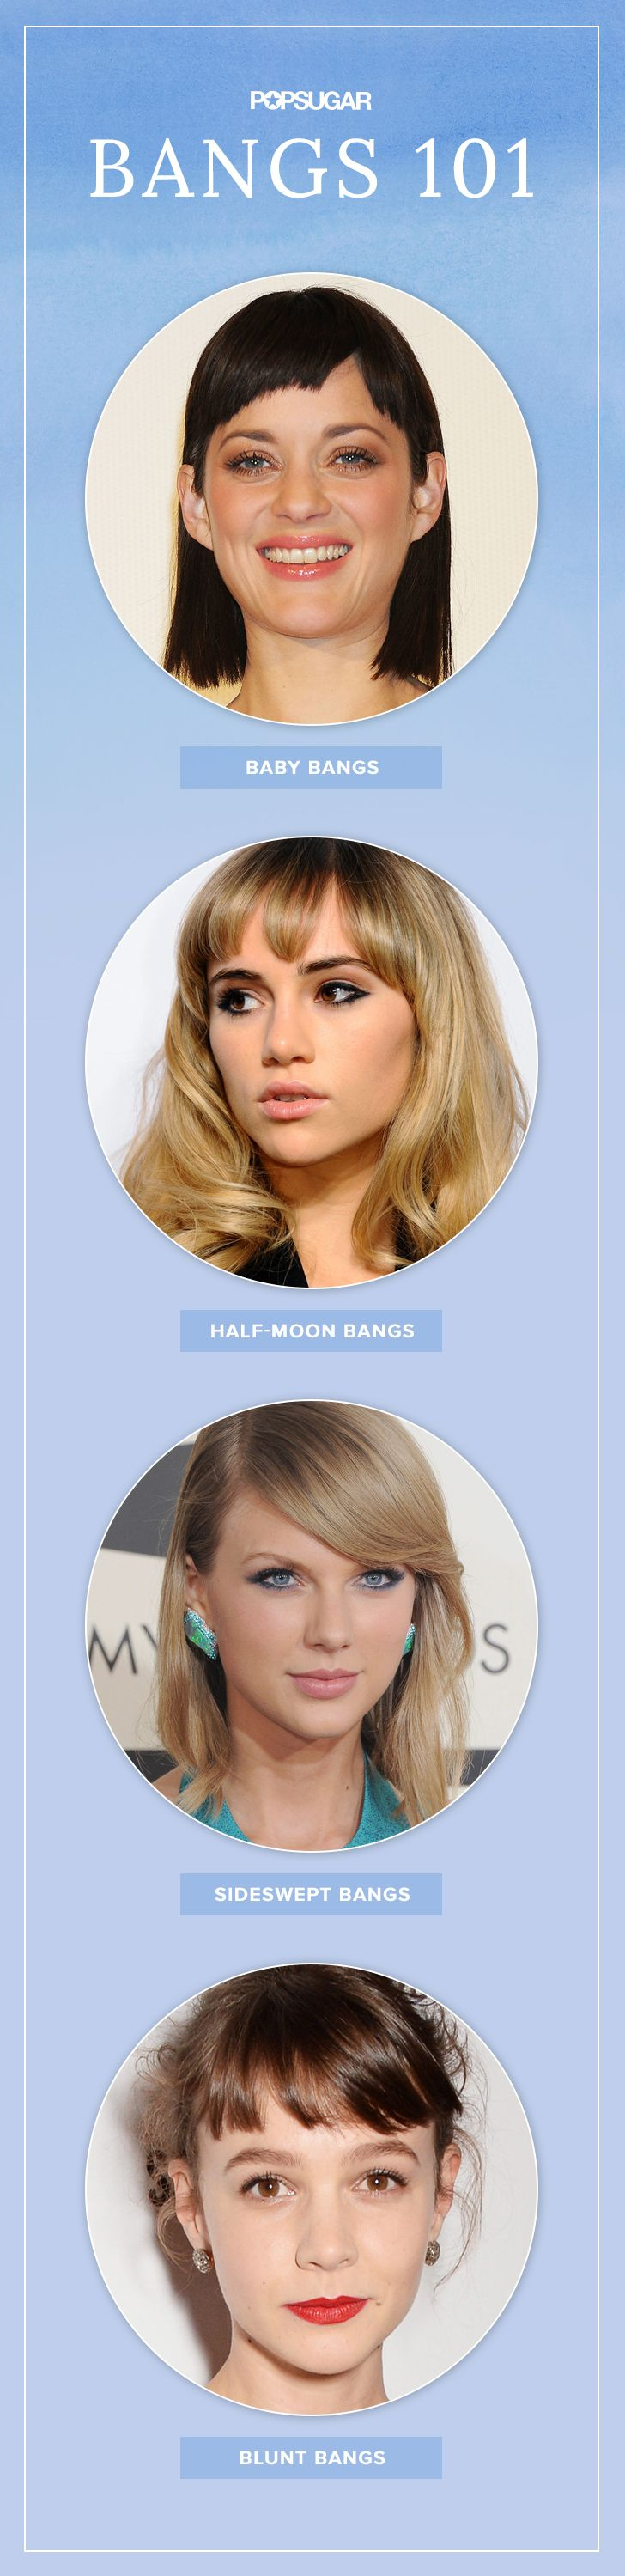 Thinking about getting bangs? This is fringe 101. You've got options: supershort, baby bangs, sideswept bangs, blunt bangs, layered bangs, or wispy half-moon bangs.